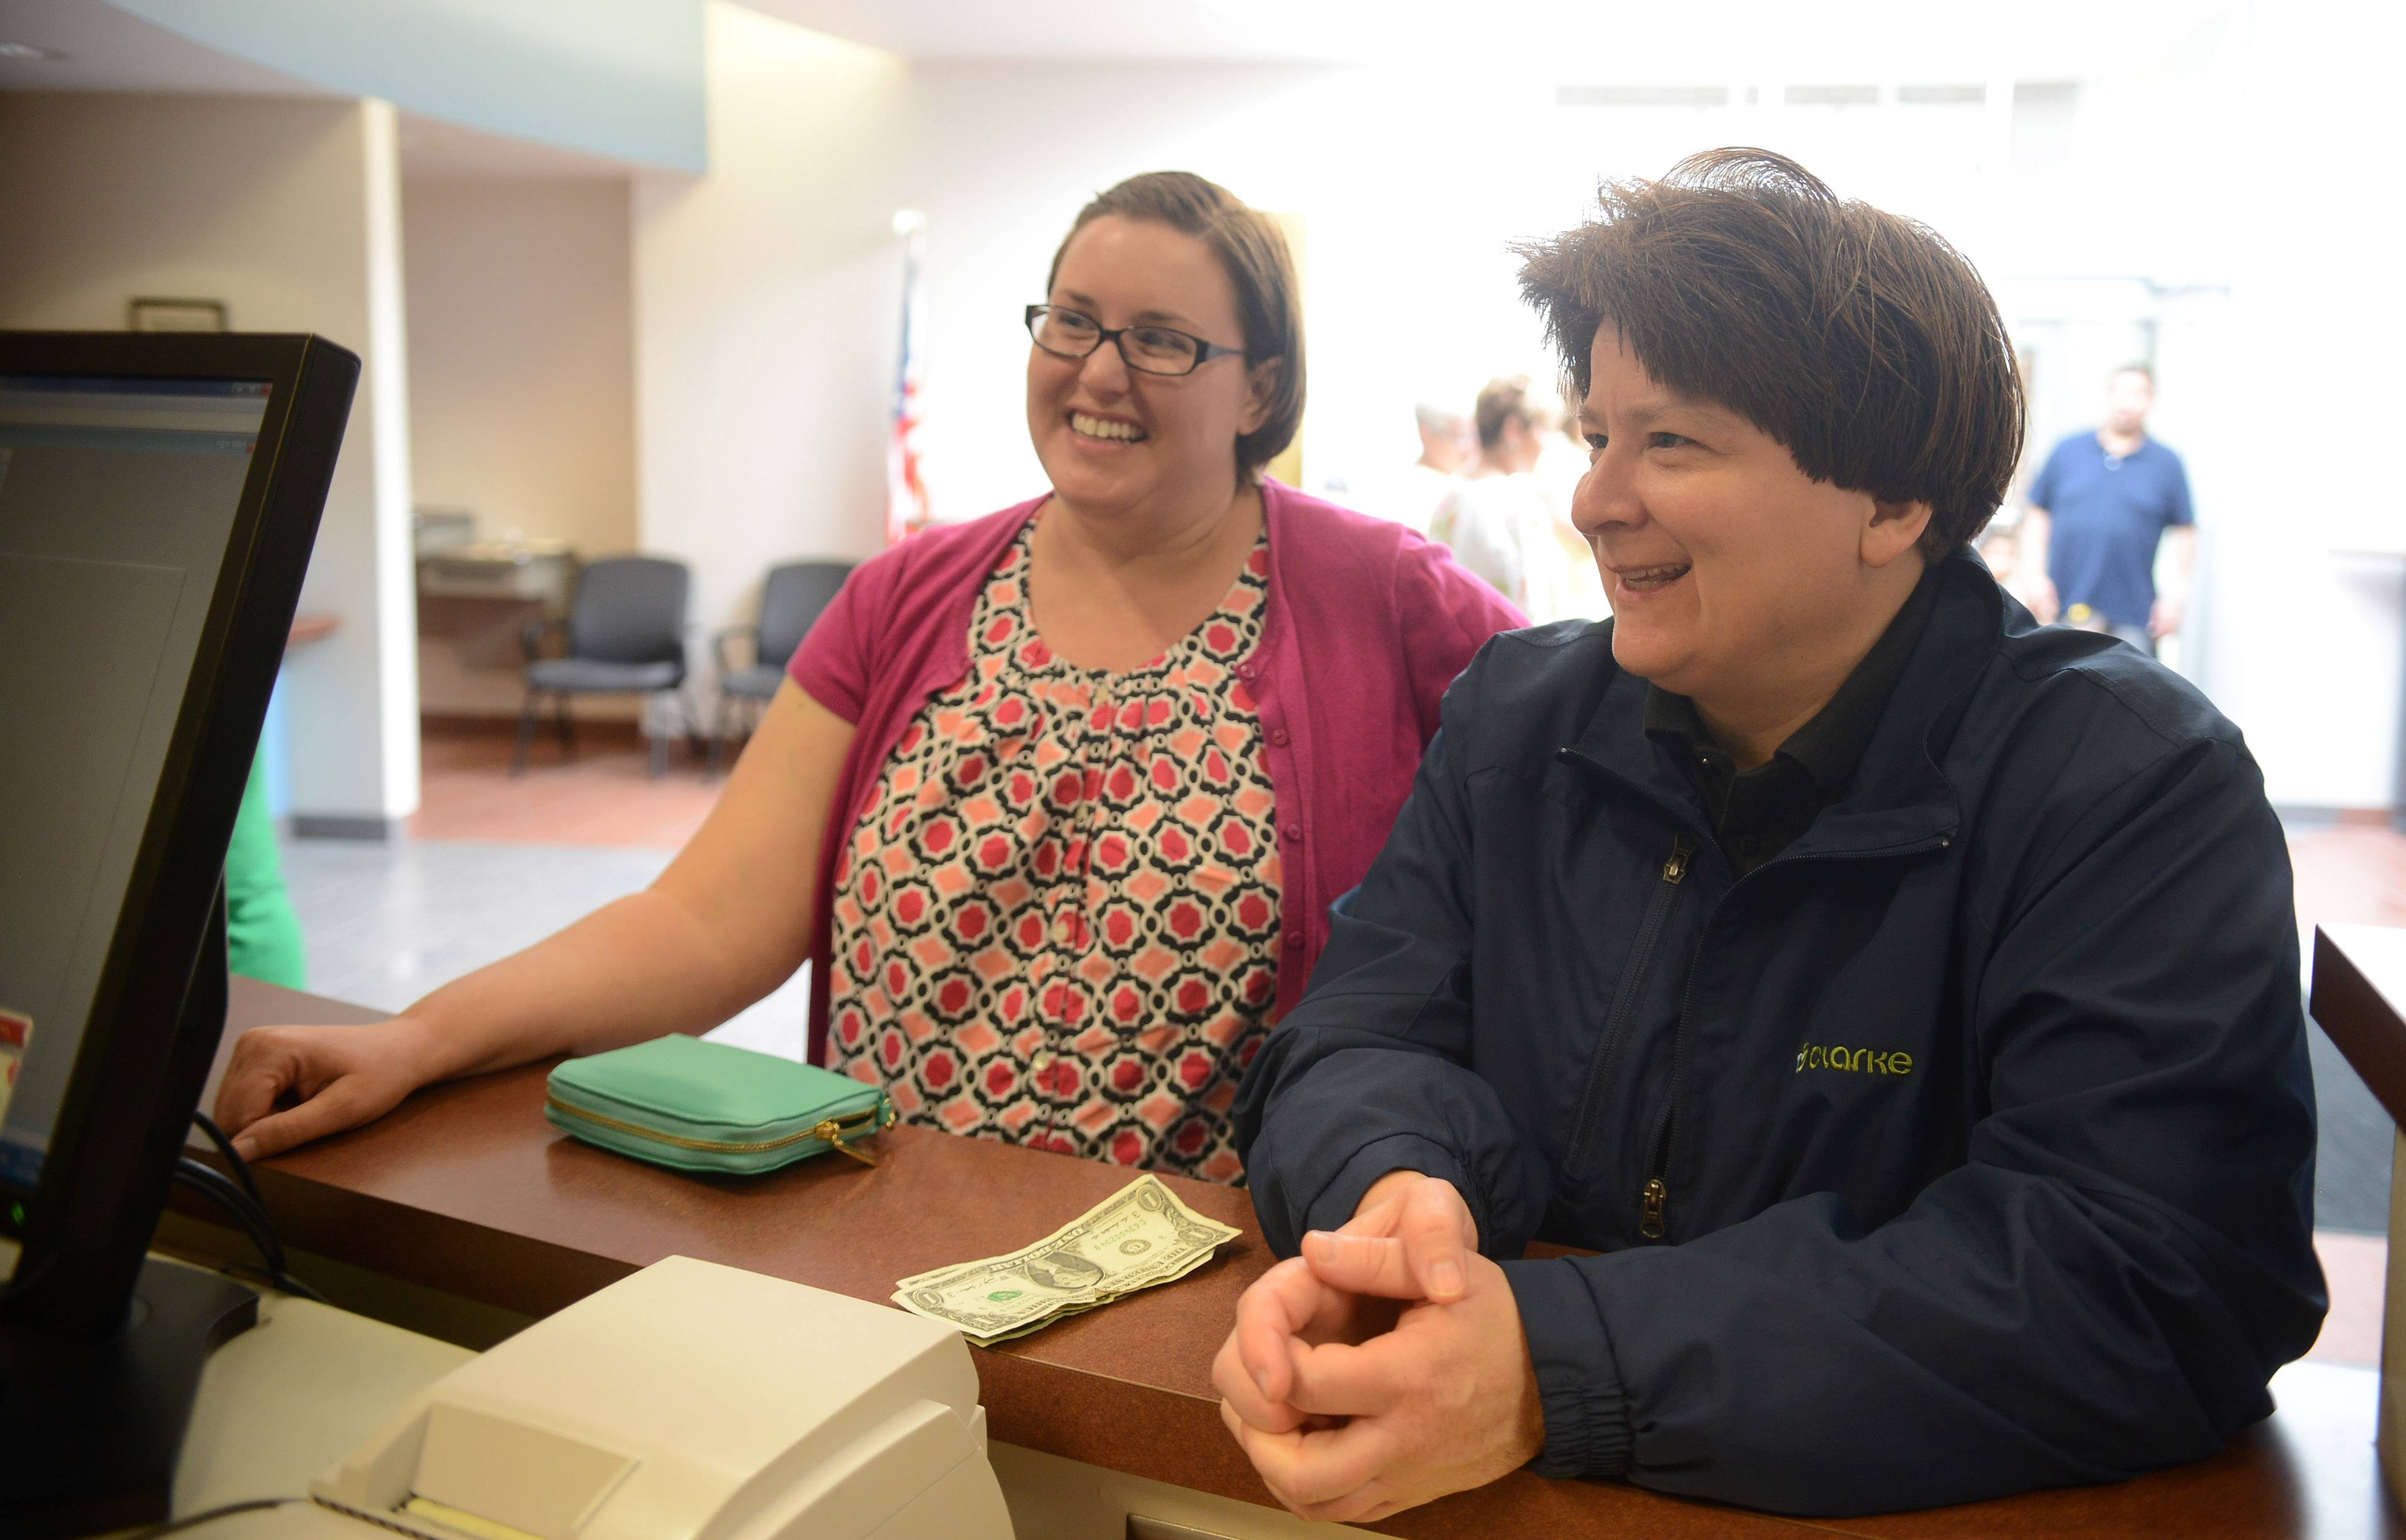 Traci Simon, left, and Michelle Selander smile while answering questions so they can receive their marriage license at the Kane County Clerk's office Monday morning in Geneva. They live in South Elgin and are planning to be married Saturday in Geneva.